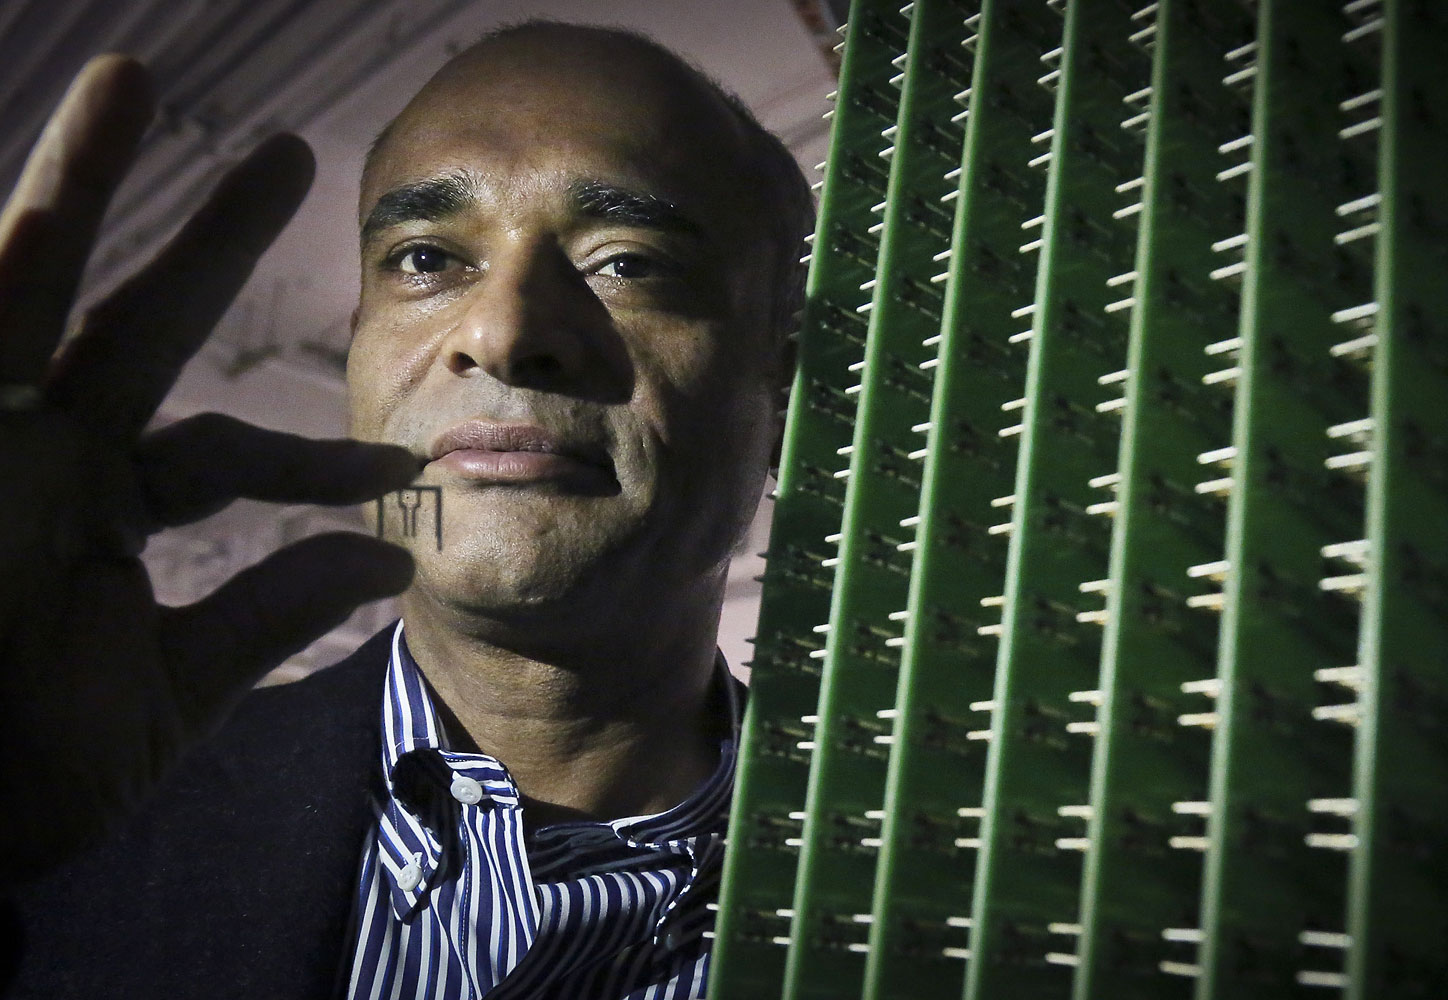 Chet Kanojia, founder and CEO of Aereo, Inc., stands next to a server array of antennas in New York, Dec. 20, 2012.